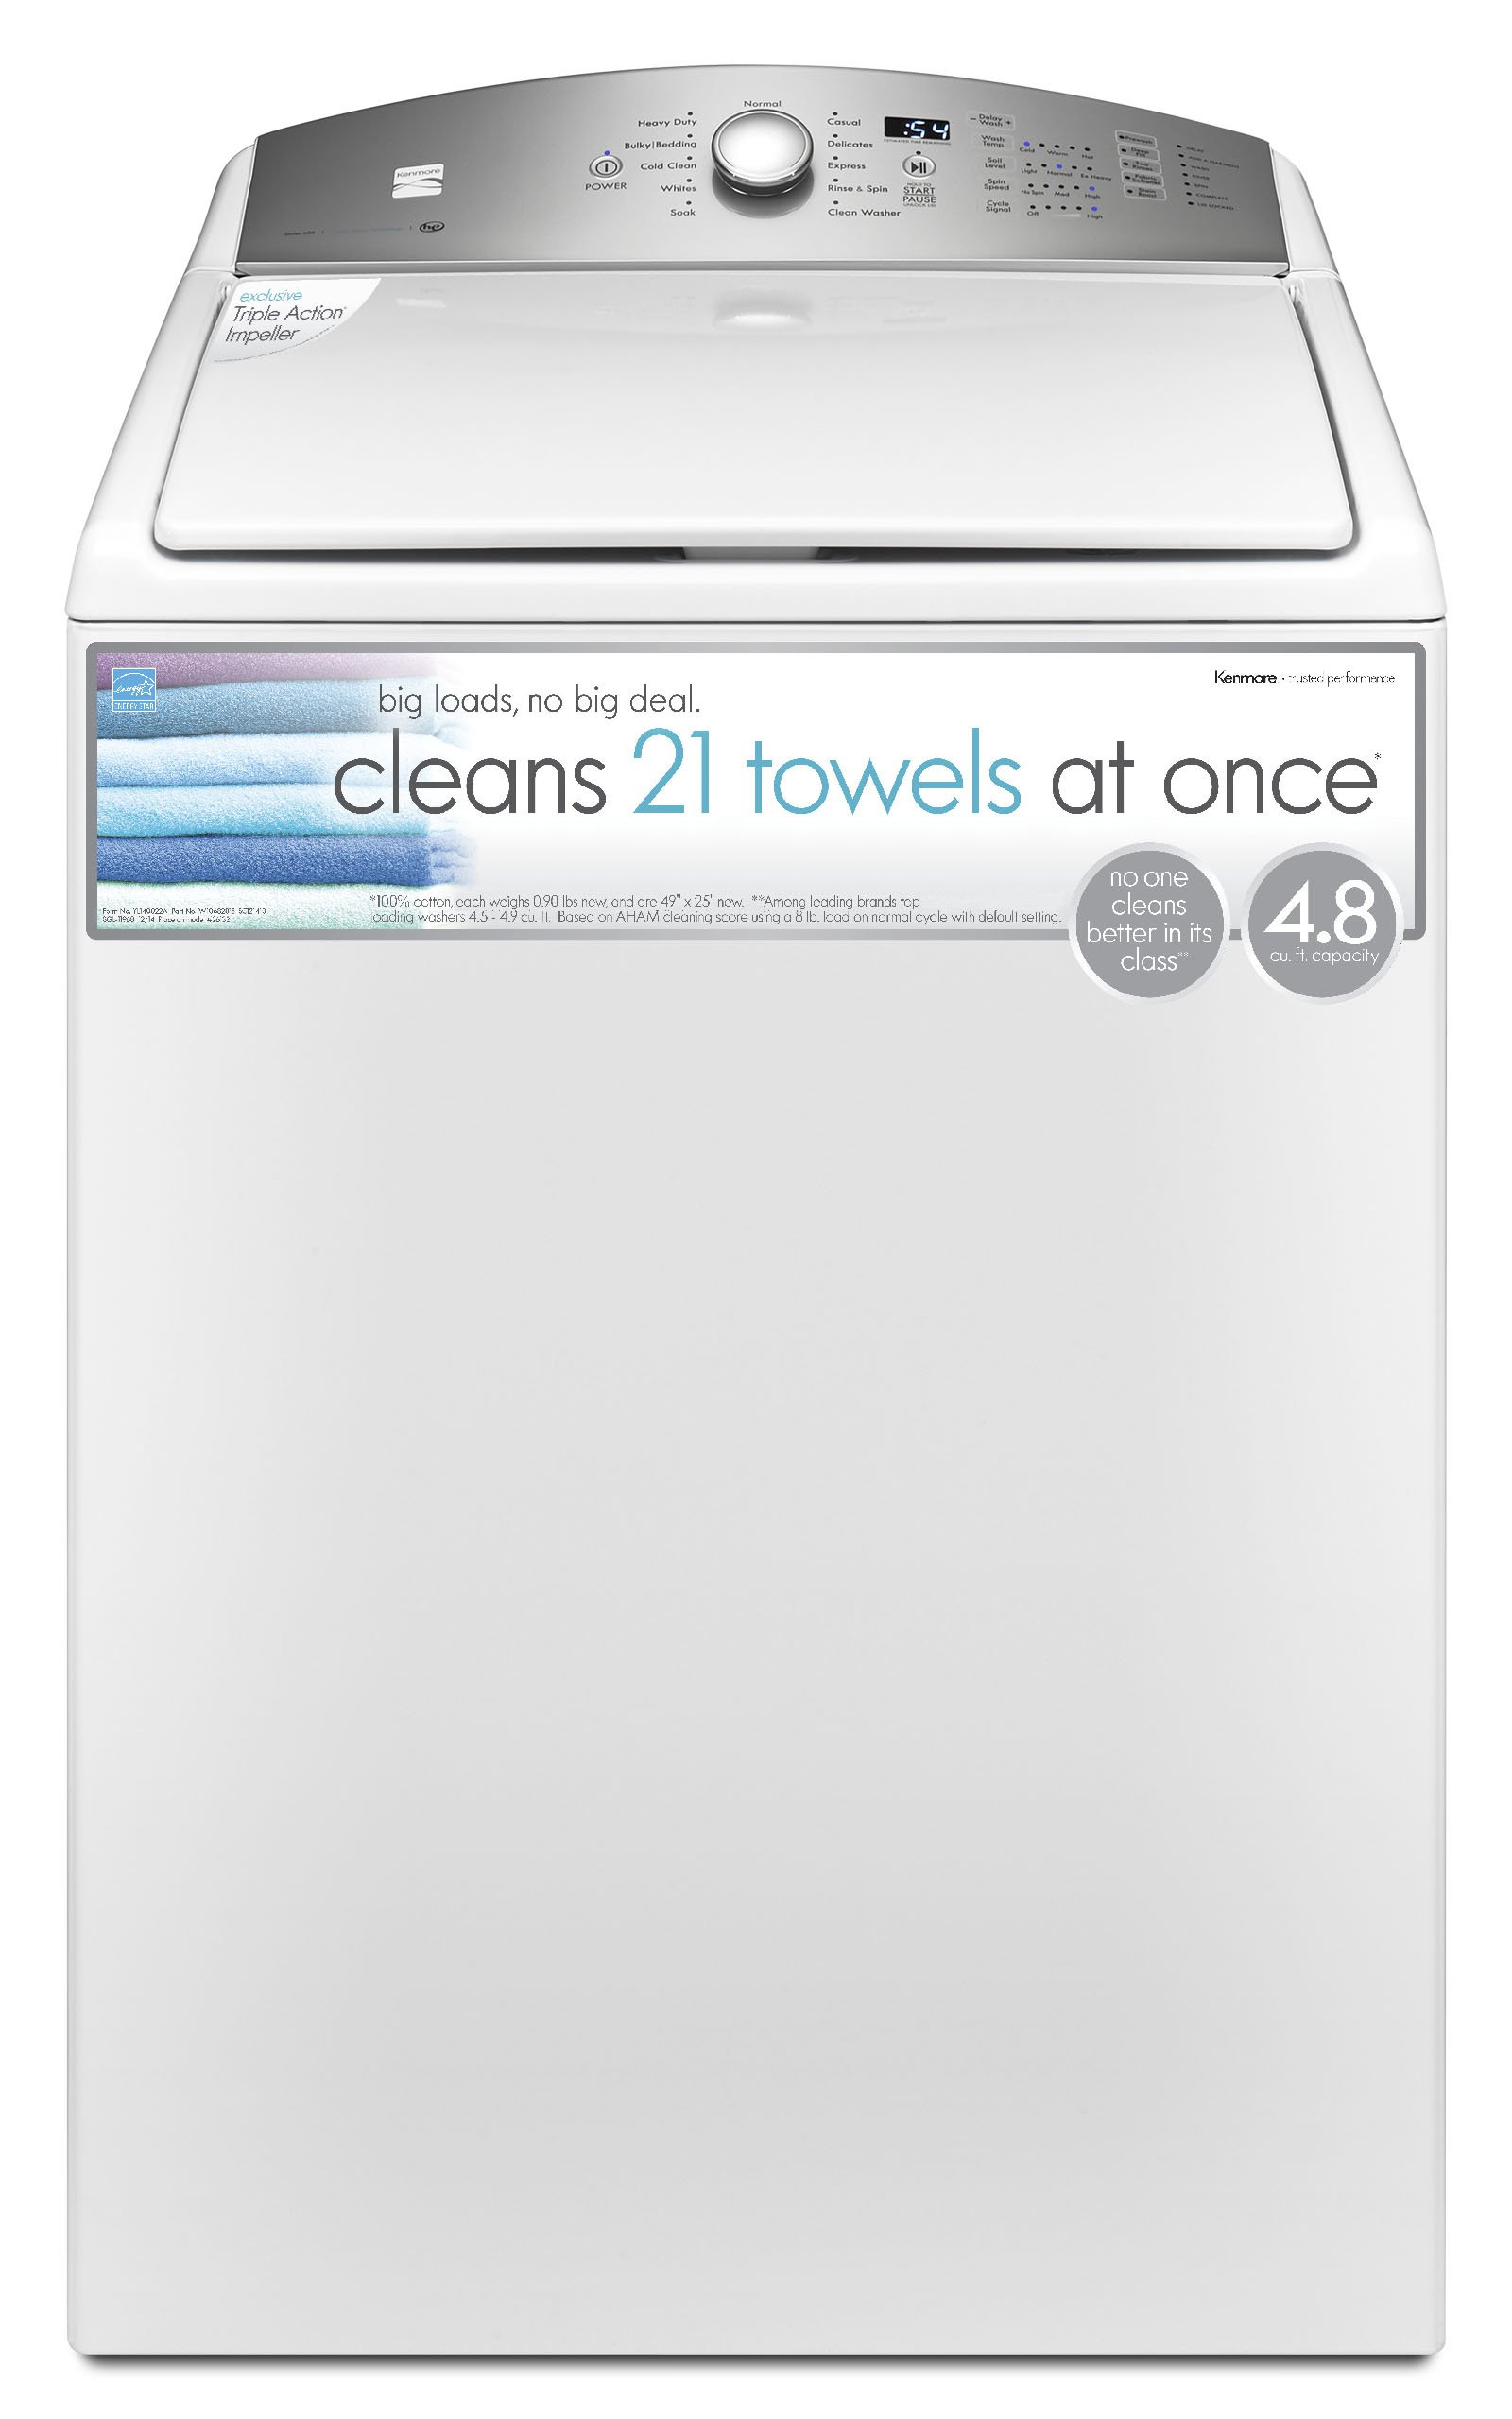 Kenmore 26132 4.8 cu.ft. Top Load Washer with Triple Action Impeller in White, includes delivery and hookup (Available in select cities only)